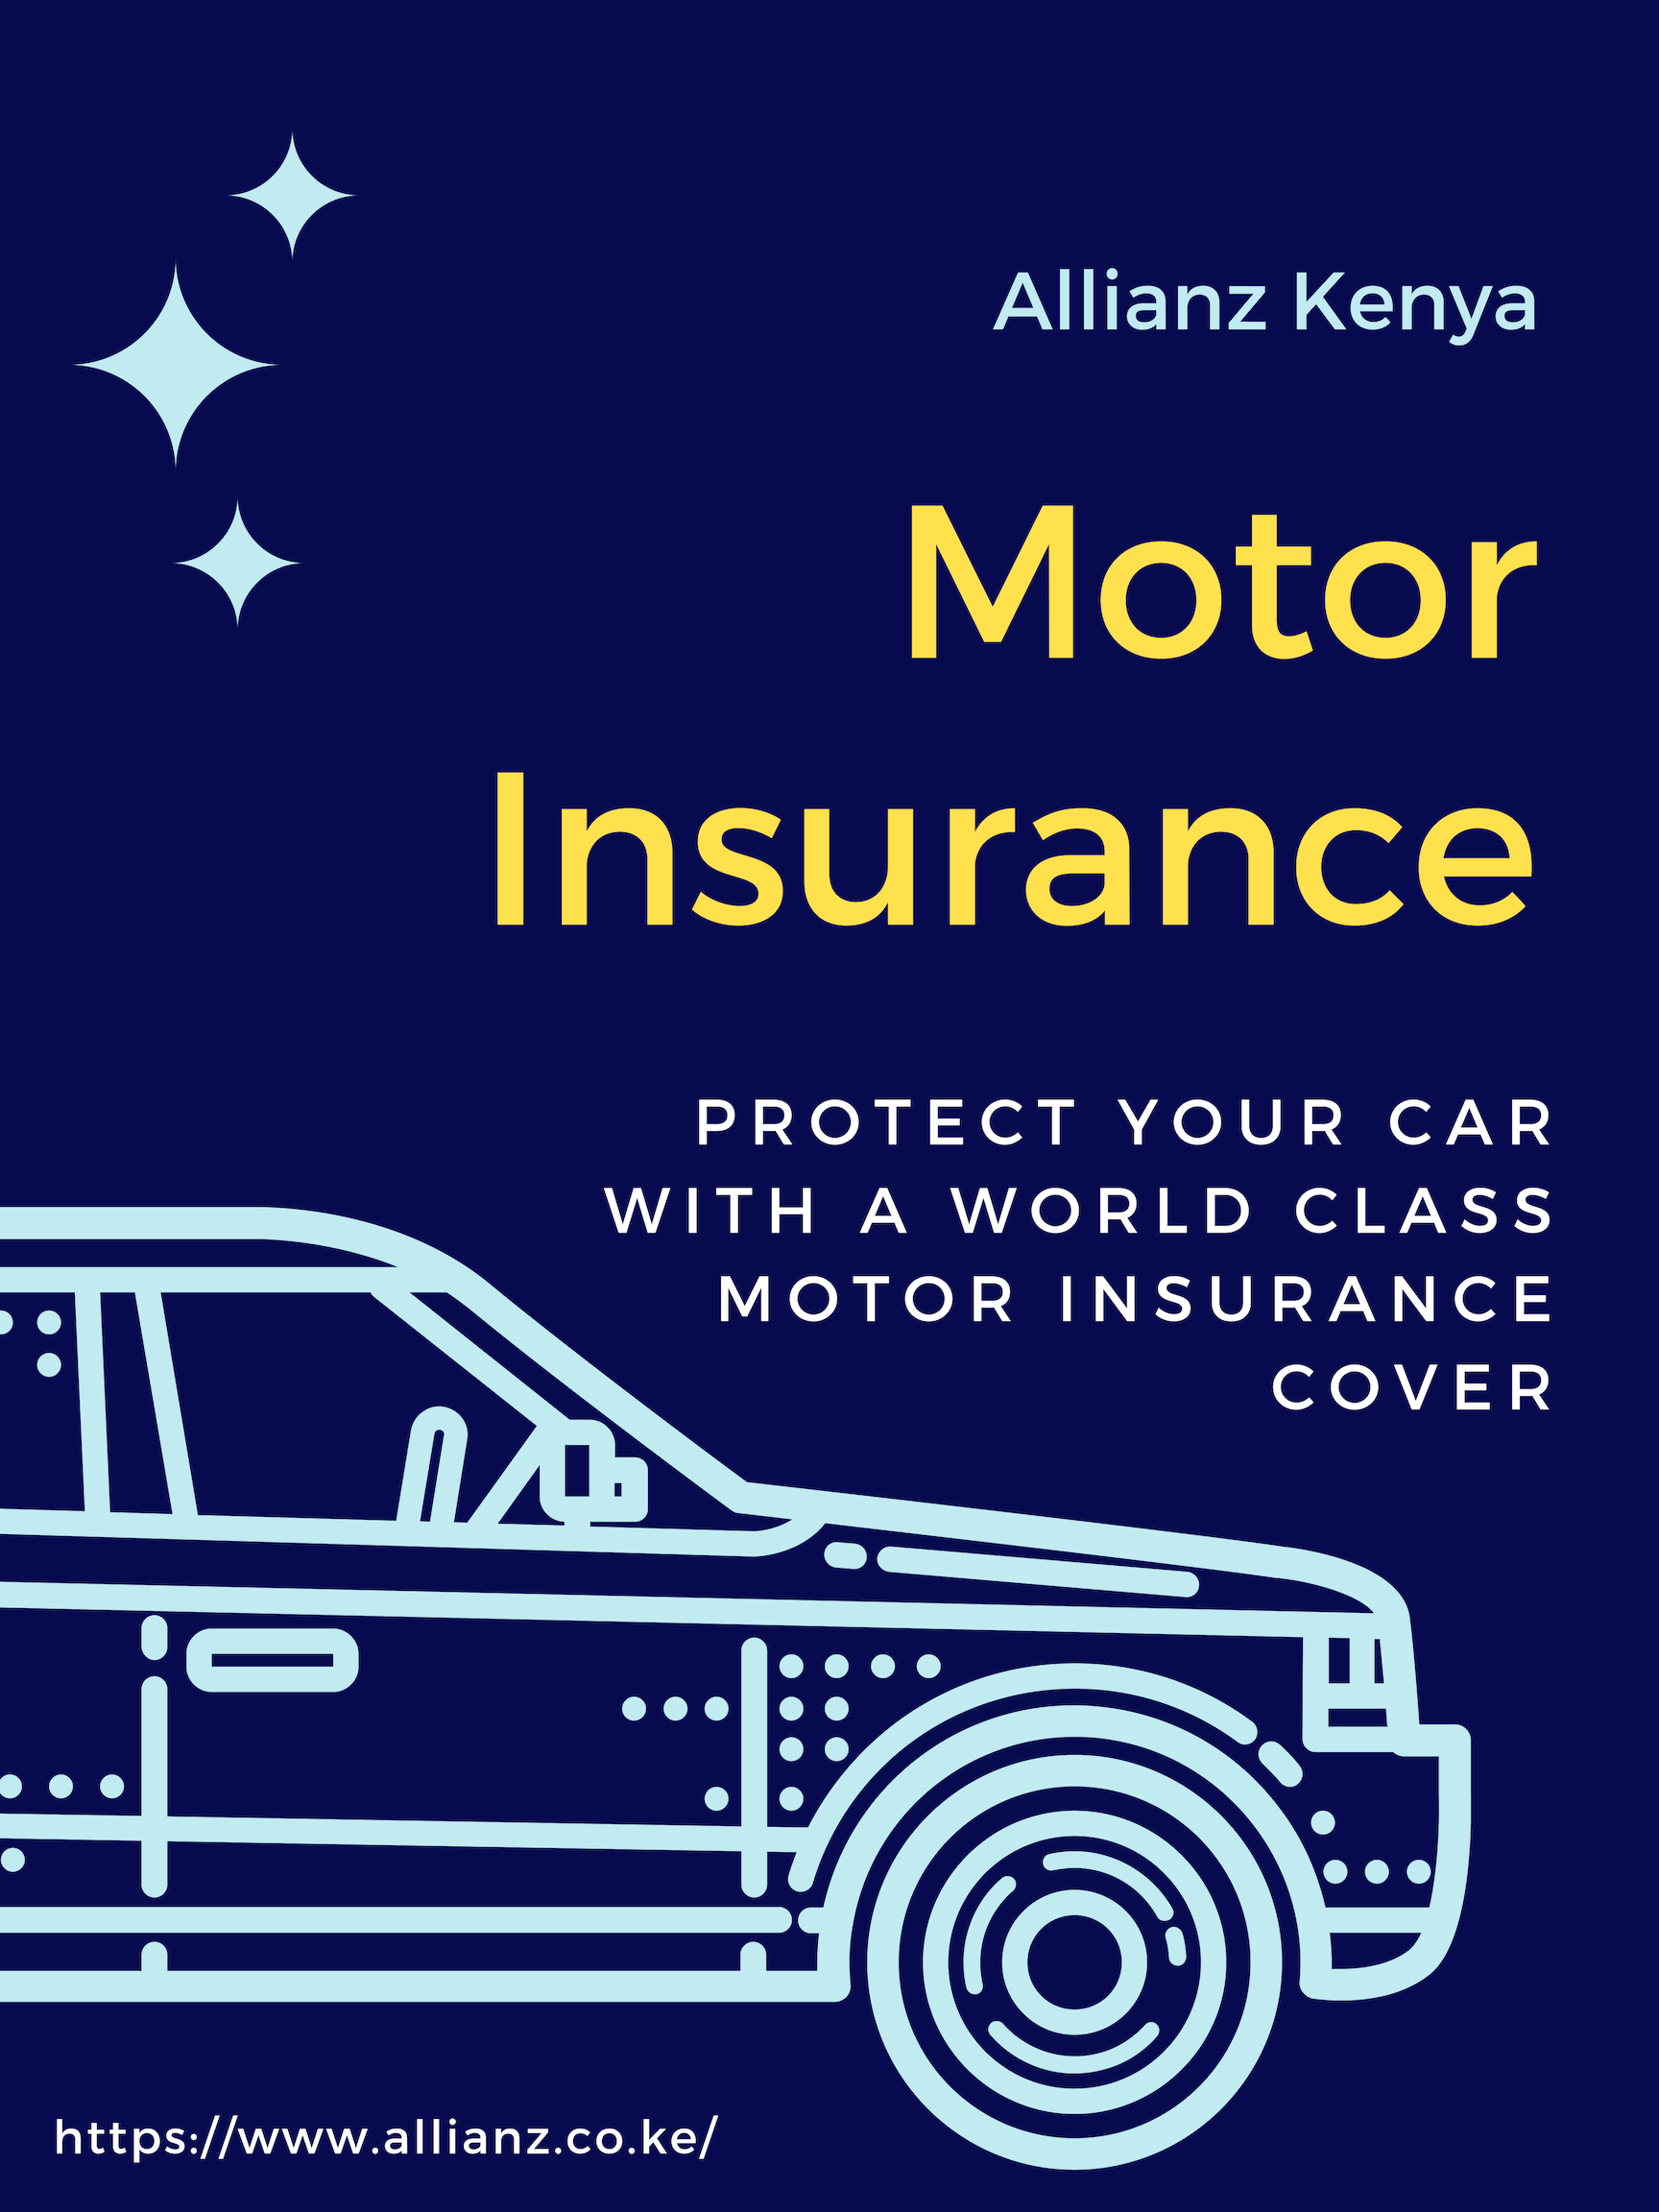 Allianz Insurance Kenya Is A Worldwide Leader In Insurance Asset Management The Group Has A Presence In More Th Car Insurance Insurance Quotes Insurance